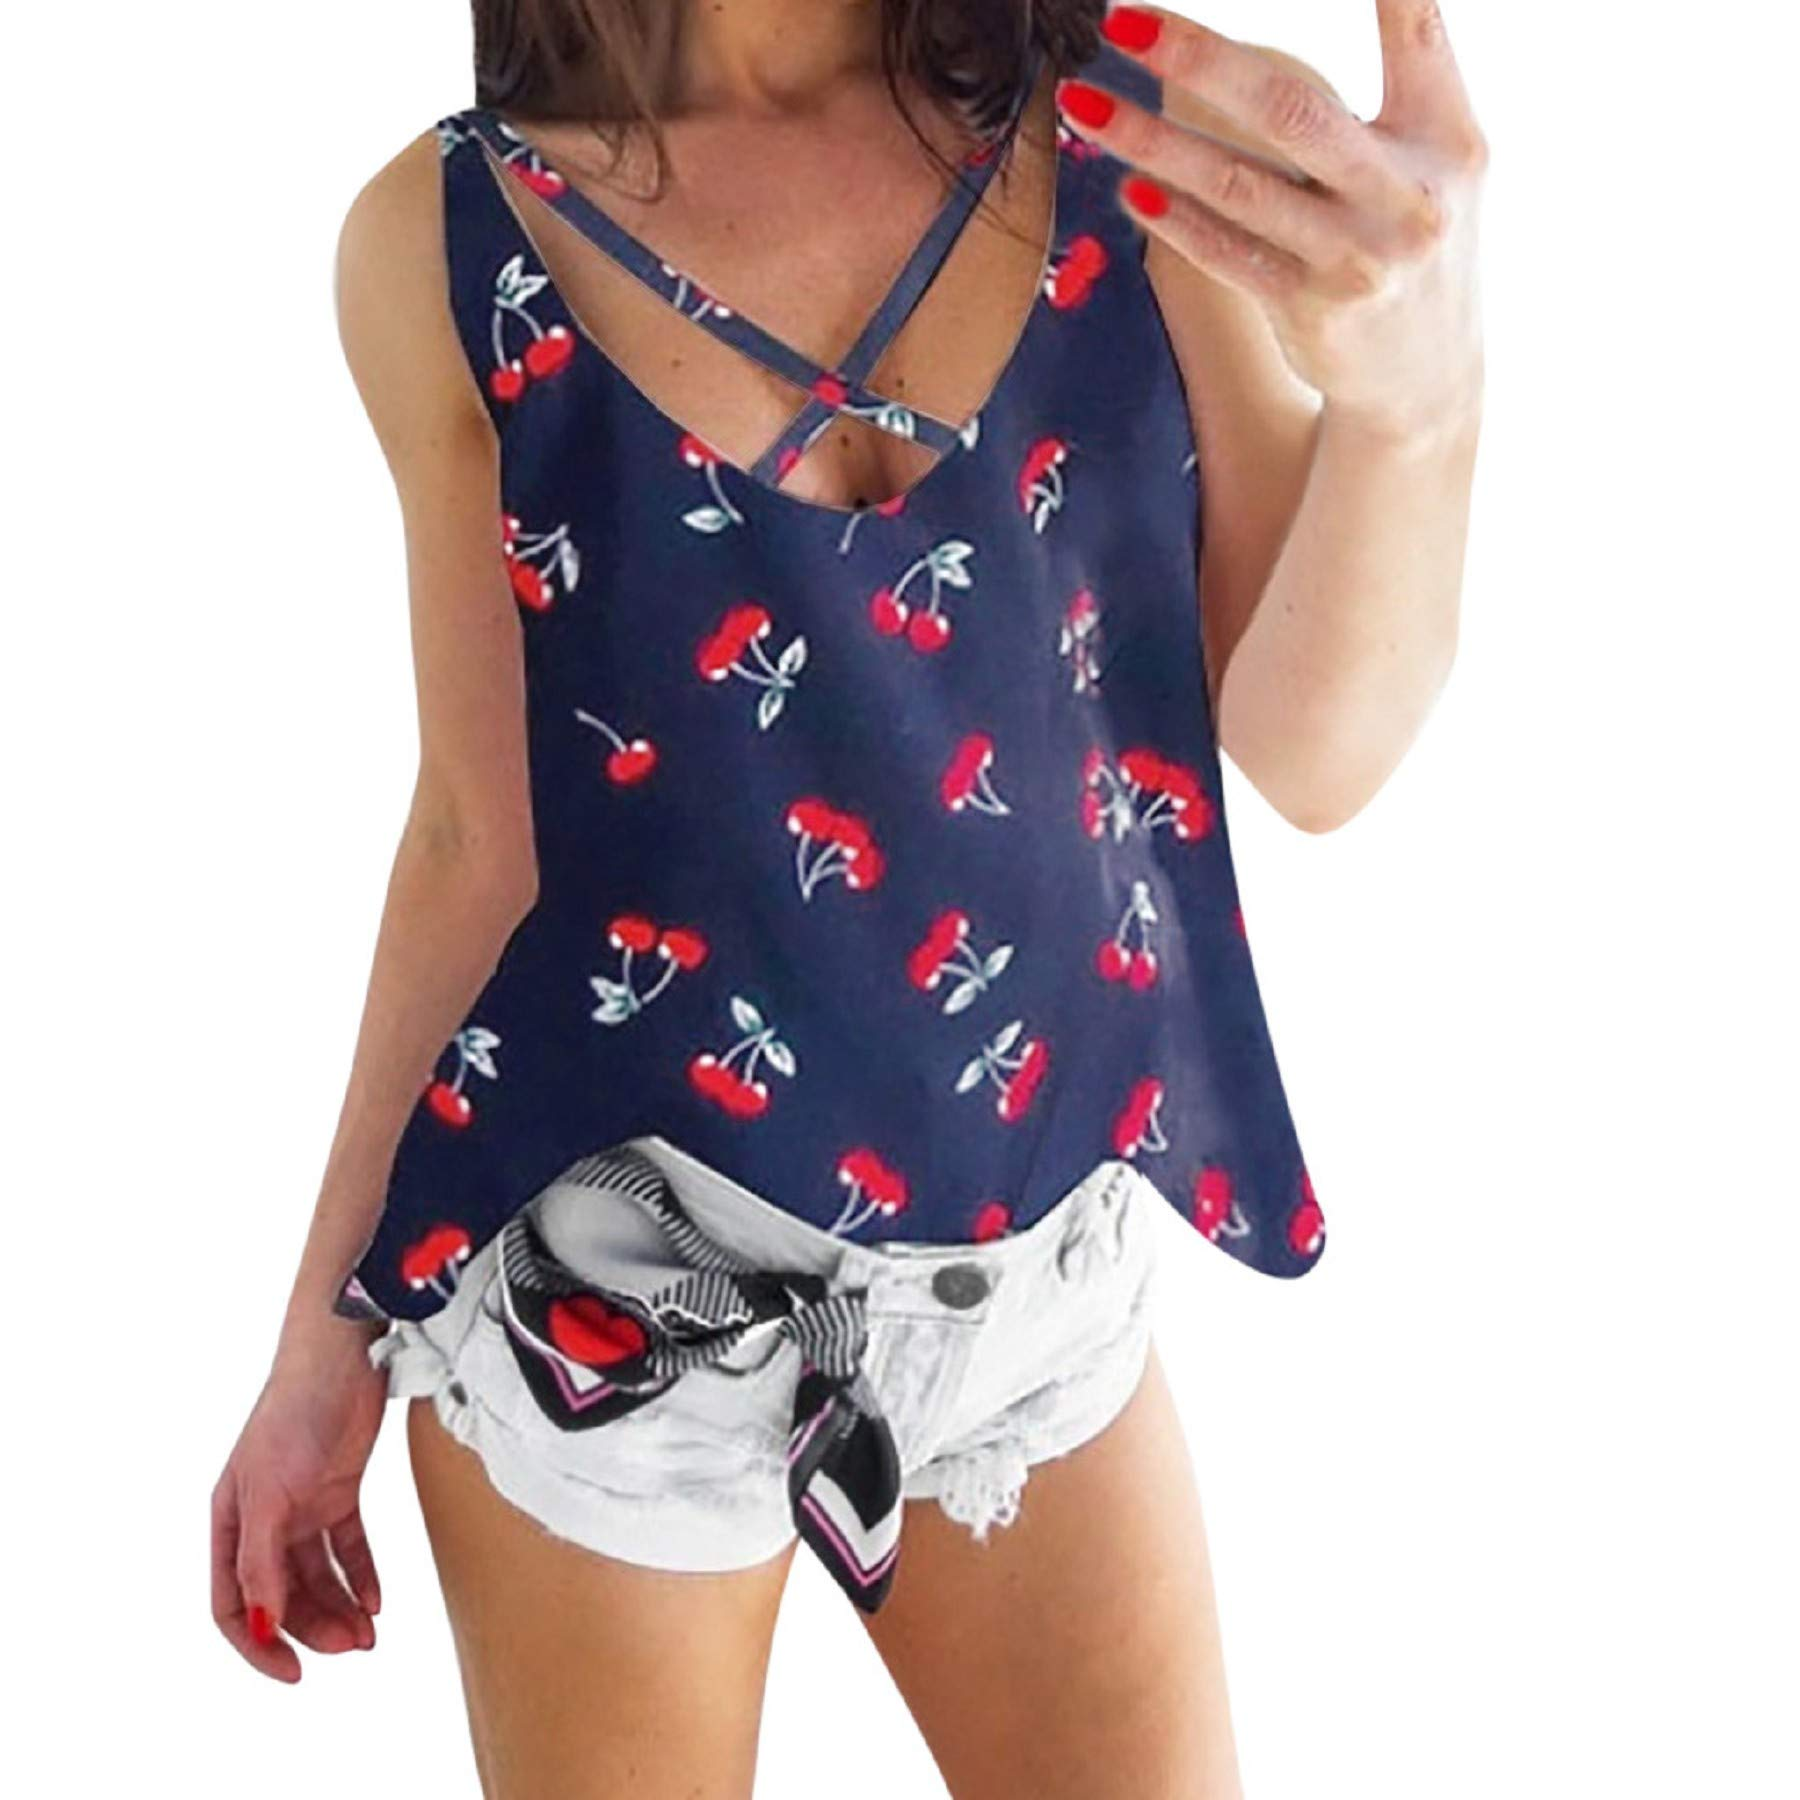 Women's Floral Print V Neck Sleeveless Camis Tops Ladies Casual Summer Criss Cross Blouse Tank Top Vest Navy